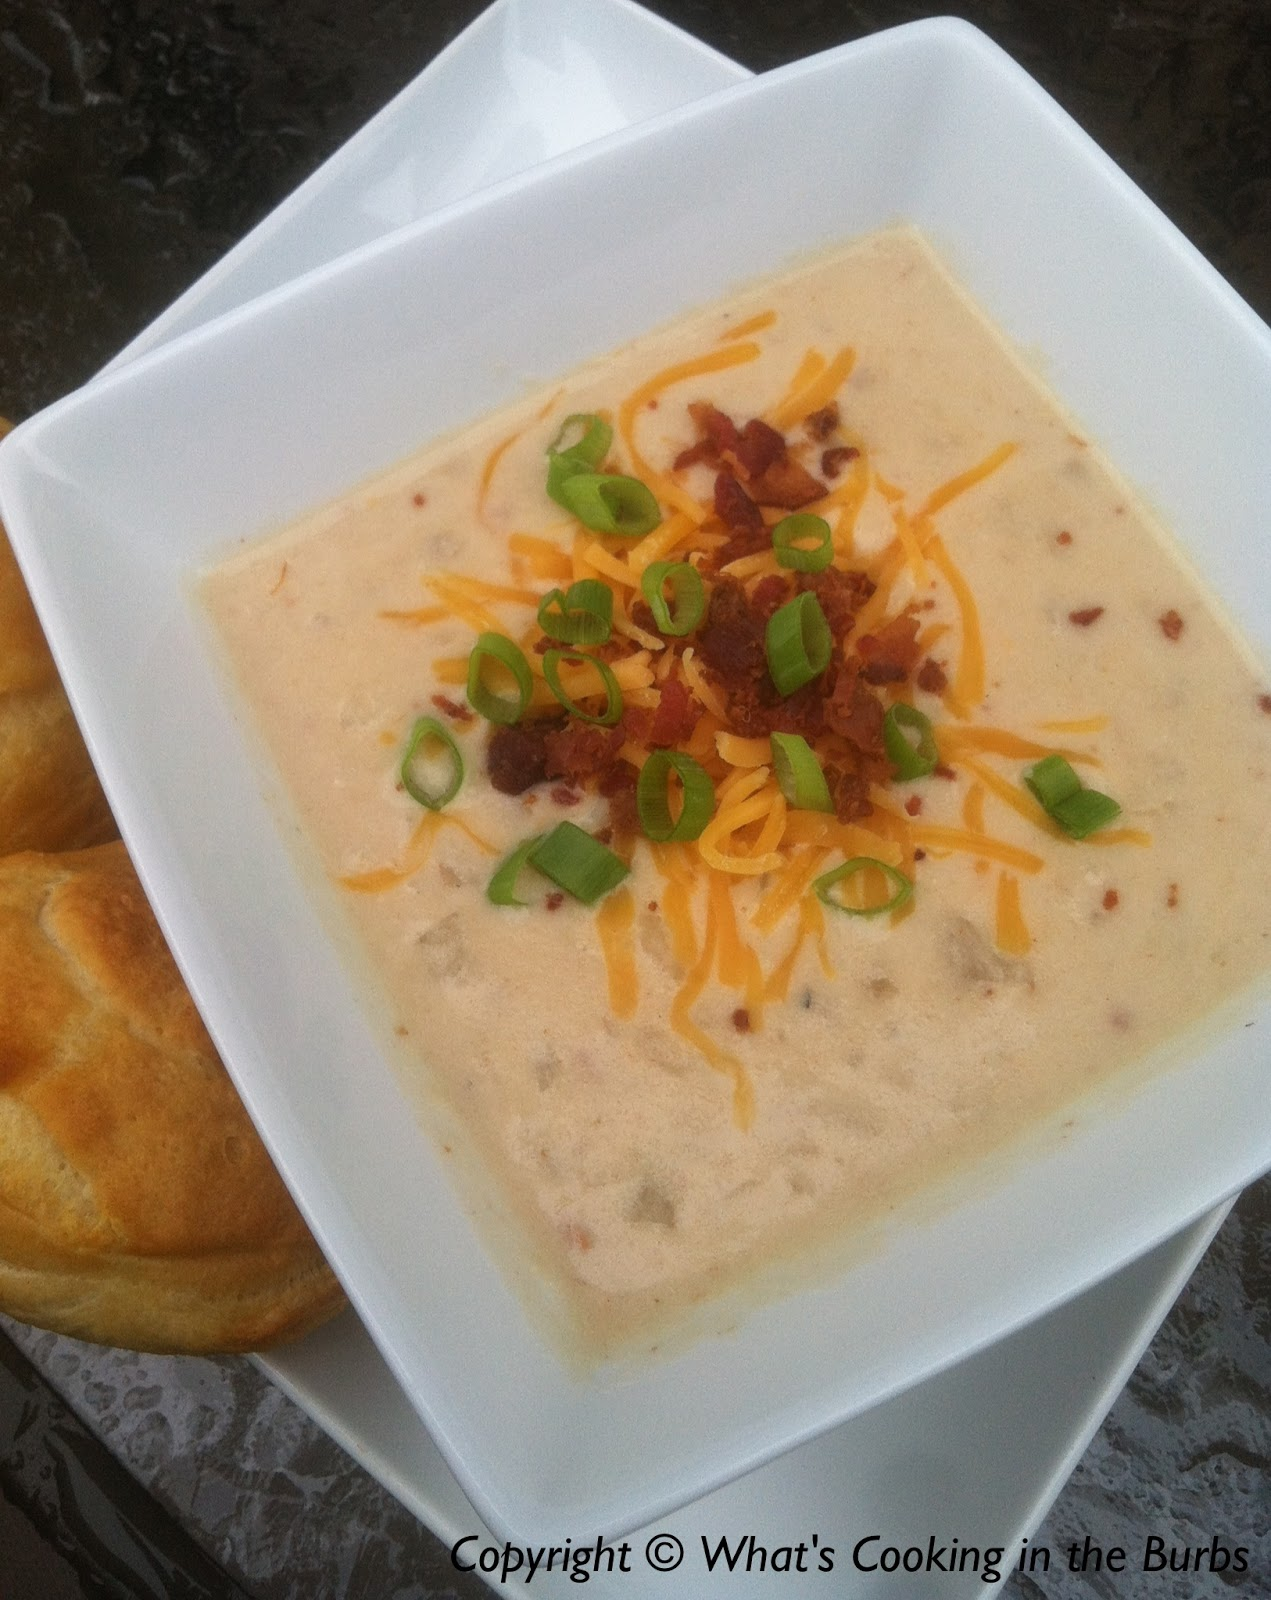 What's cooking in the burbs: Spicy Cream Cheese Potato Soup